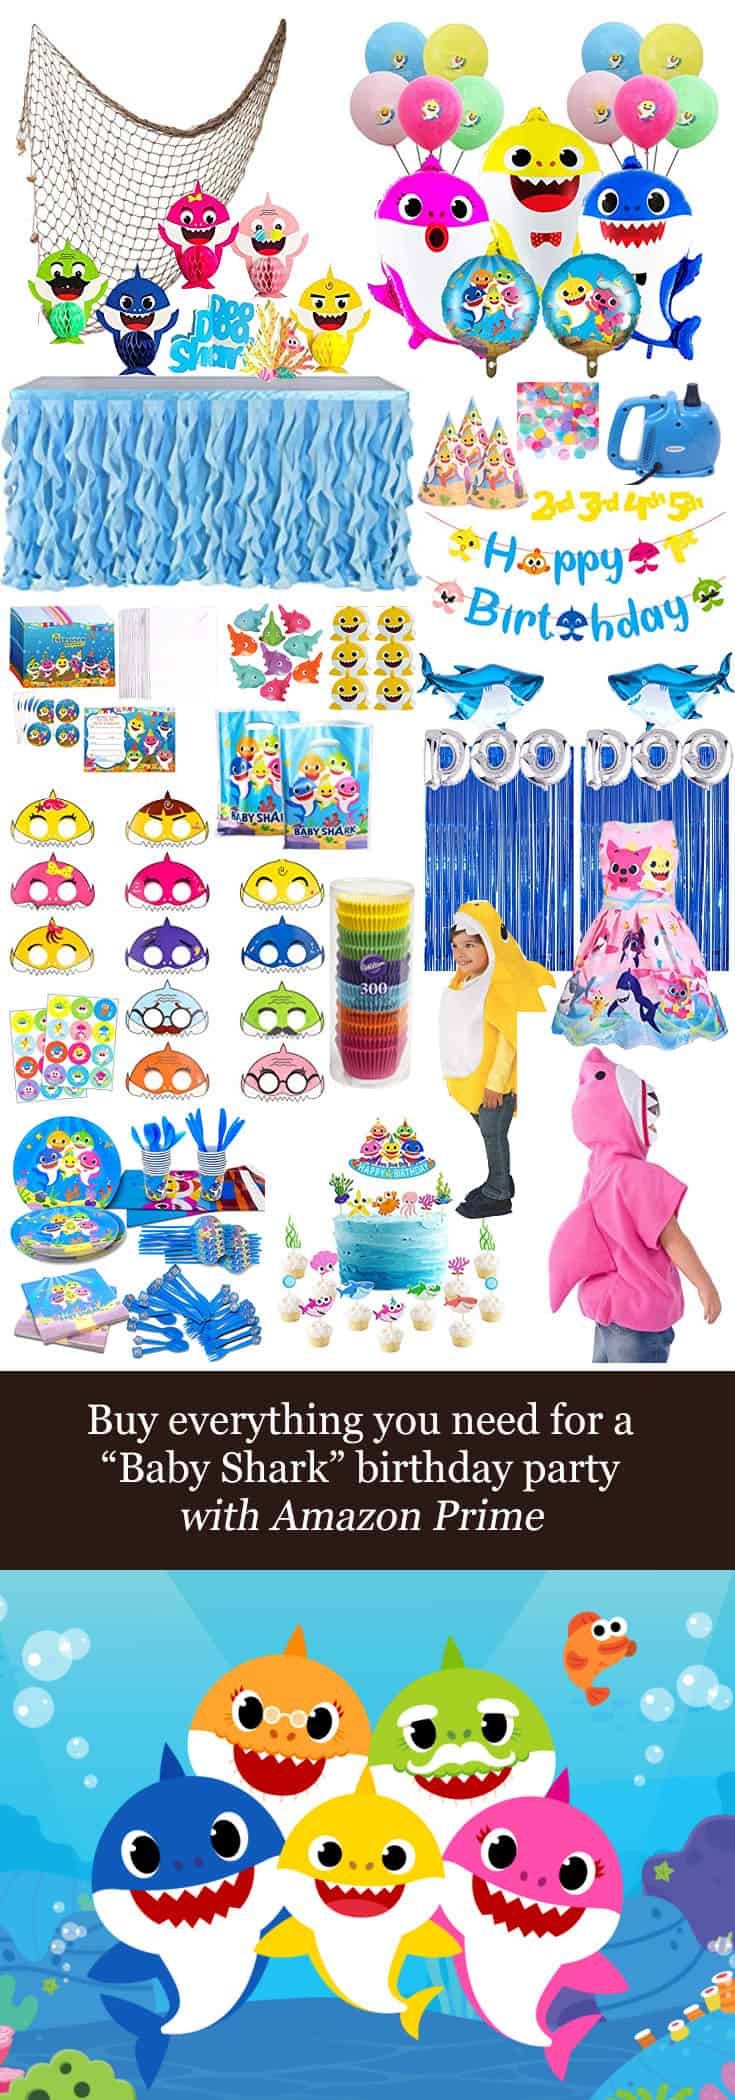 Alaskan Mom Blogger, Kiss My Tulle, shares how you can buy everything you need for a #BabyShark #birthday #party with #AmazonPrime!